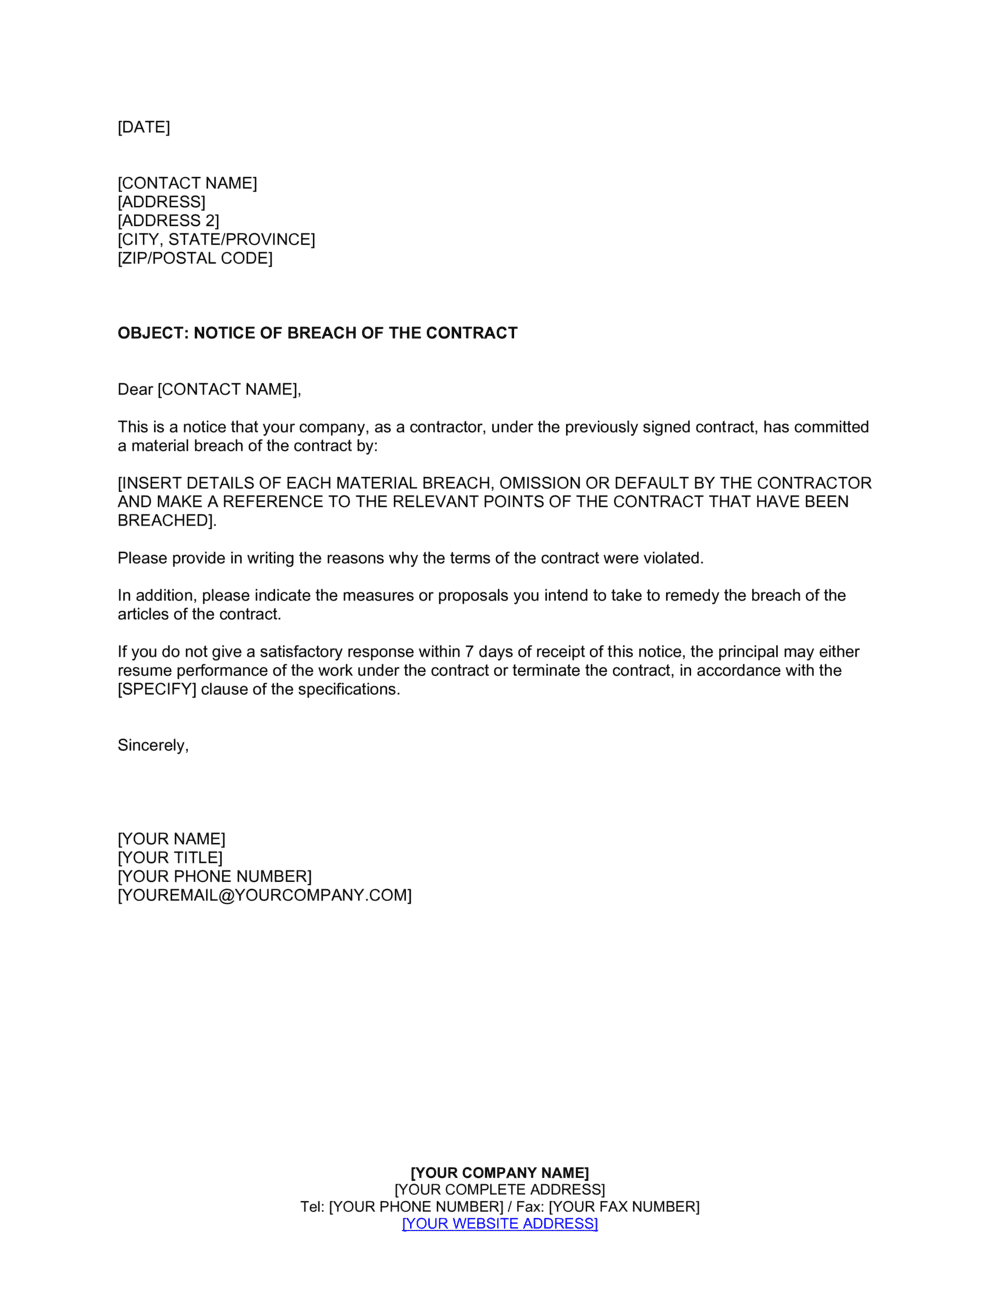 Business-in-a-Box's Breach Of Contract Letter Template